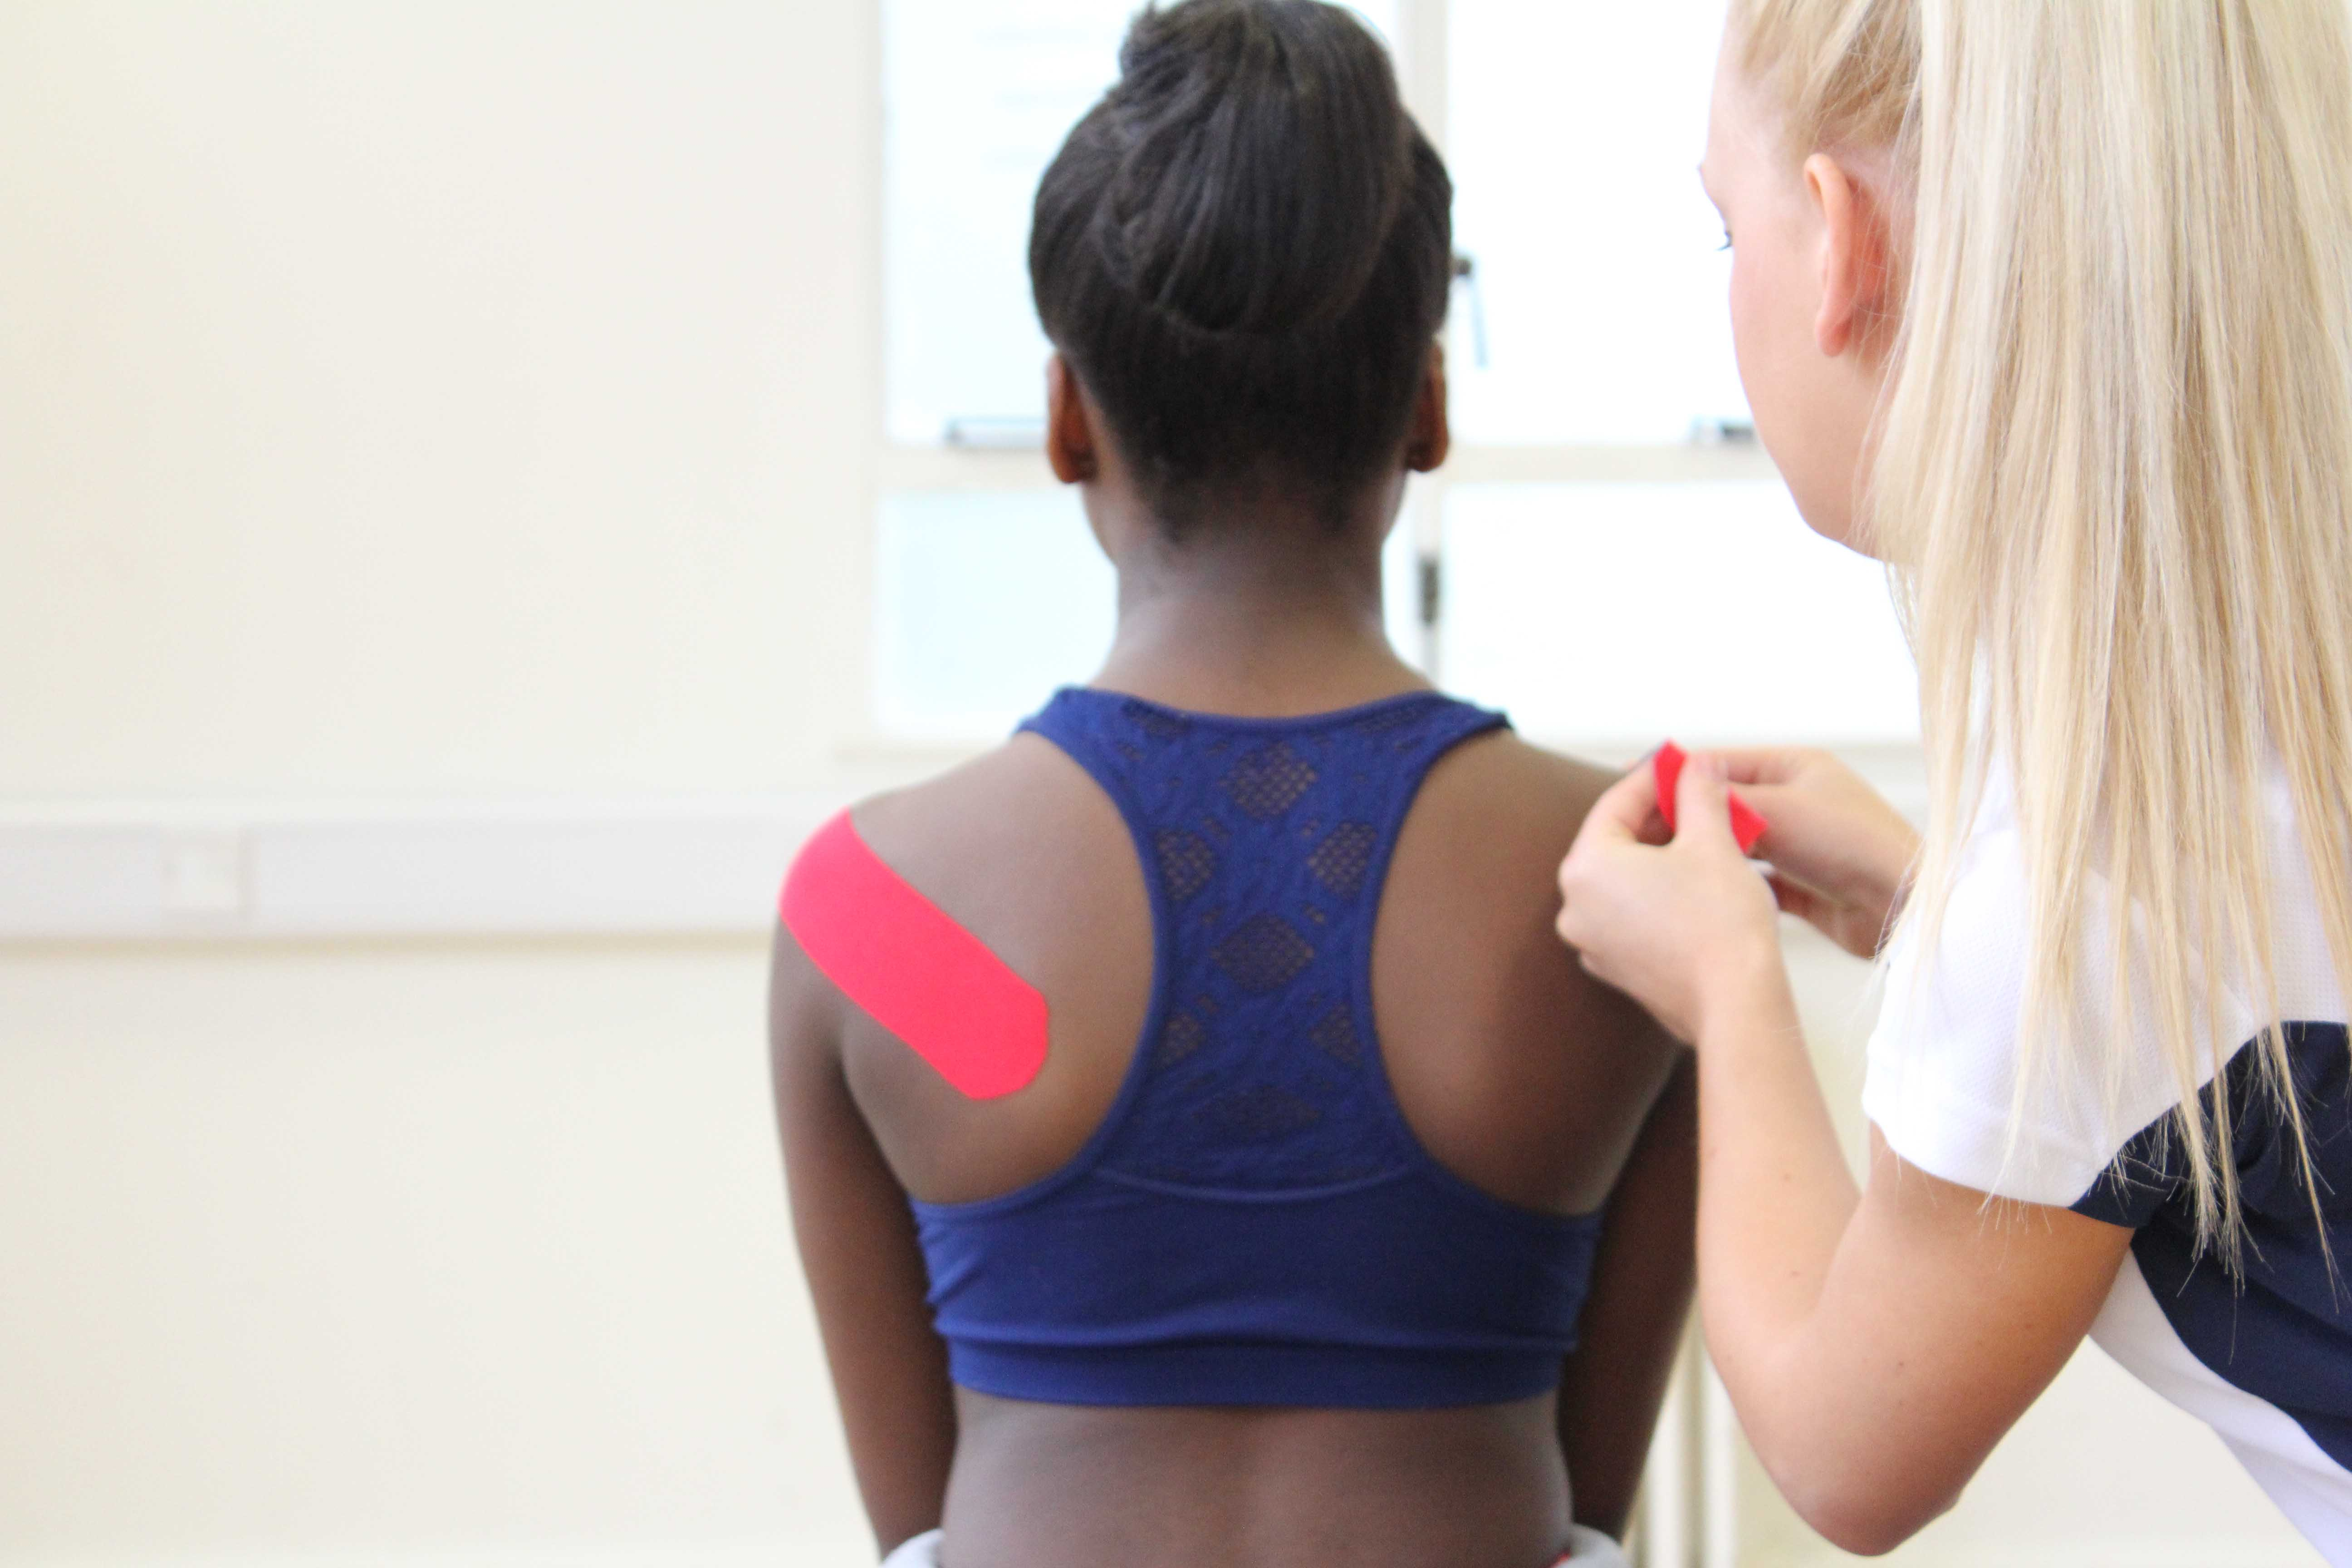 Taping is an effective treatment to help provide patients short term with support and stability.